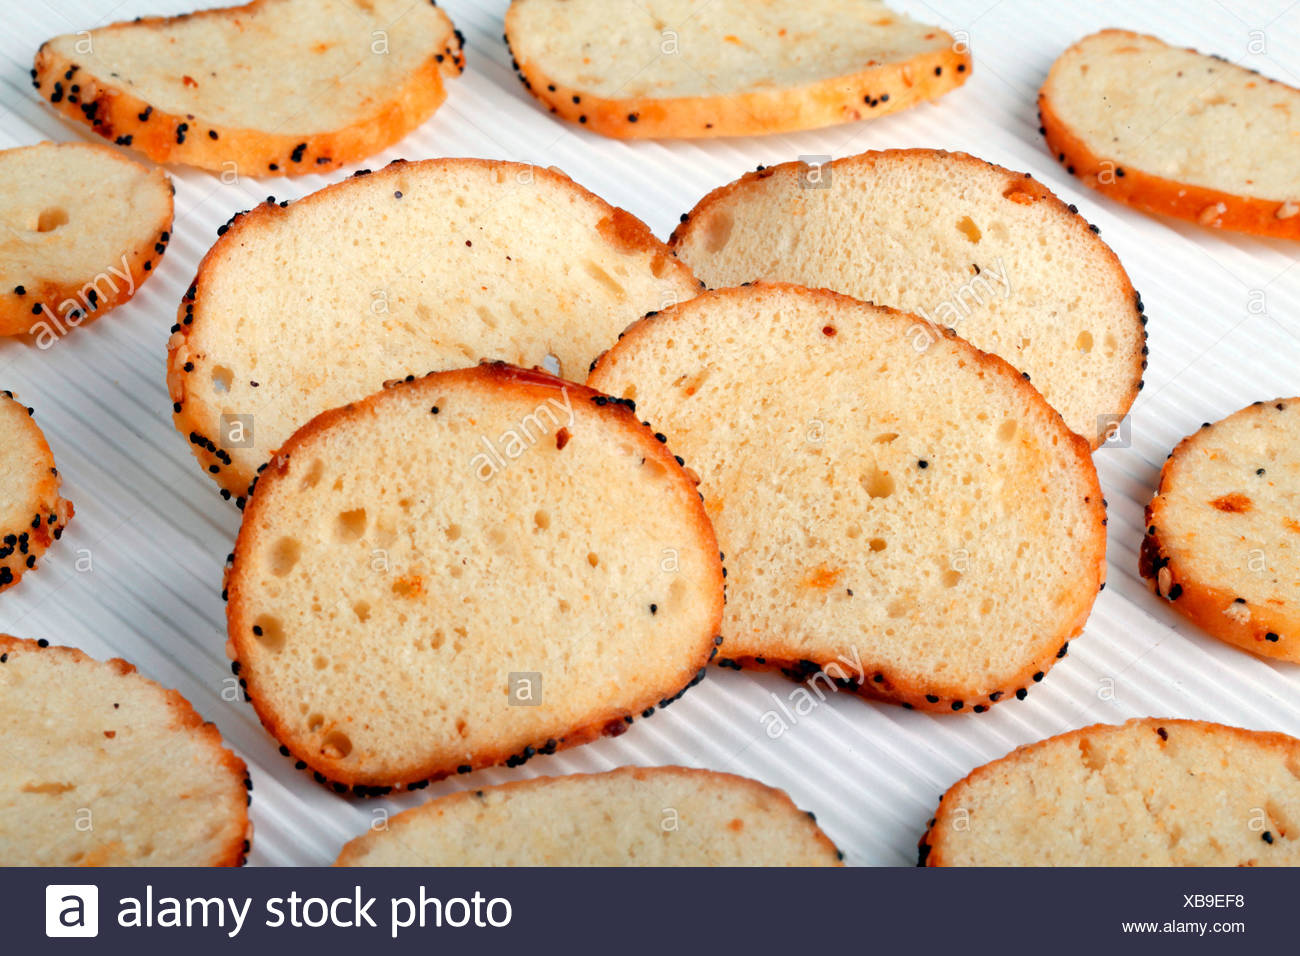 BAGEL CHIPS - Stock Image